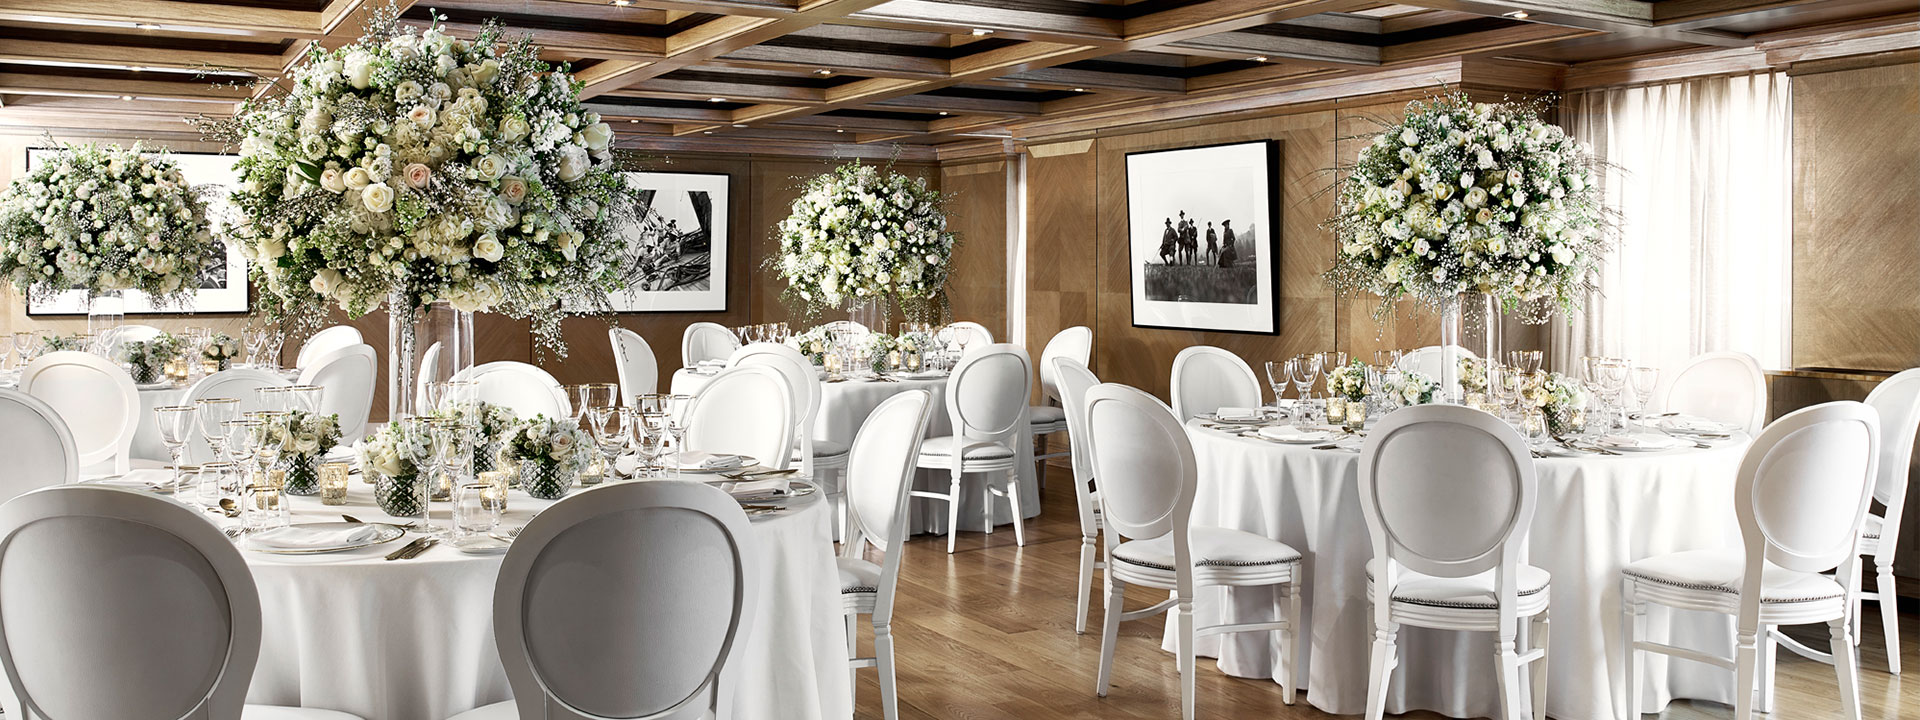 Wedding breakfast dining room at The Connaught hotel Mayfair